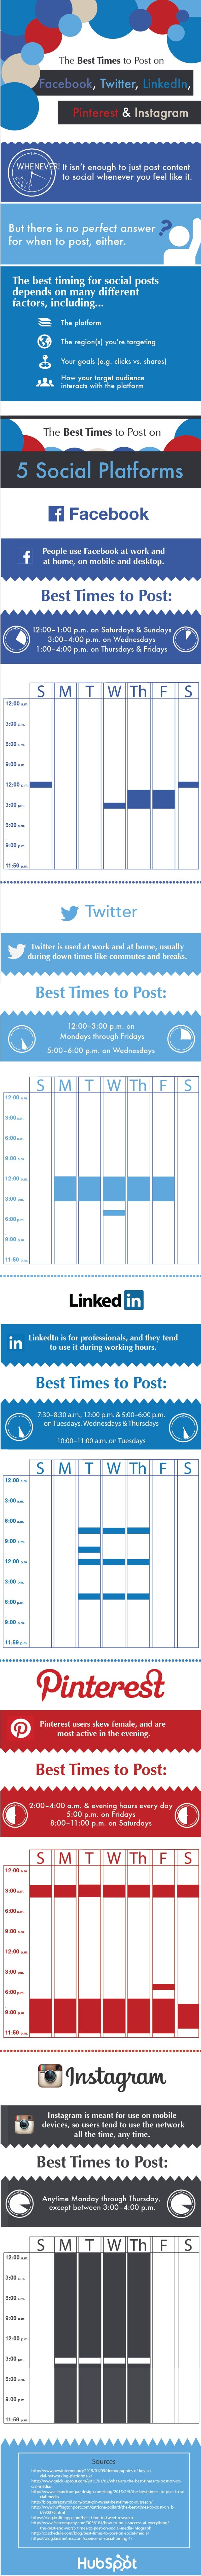 The Best Times to Post on Facebook, Twitter, LinkedIn & Other Social Media Sites [Hubspot Infographic]